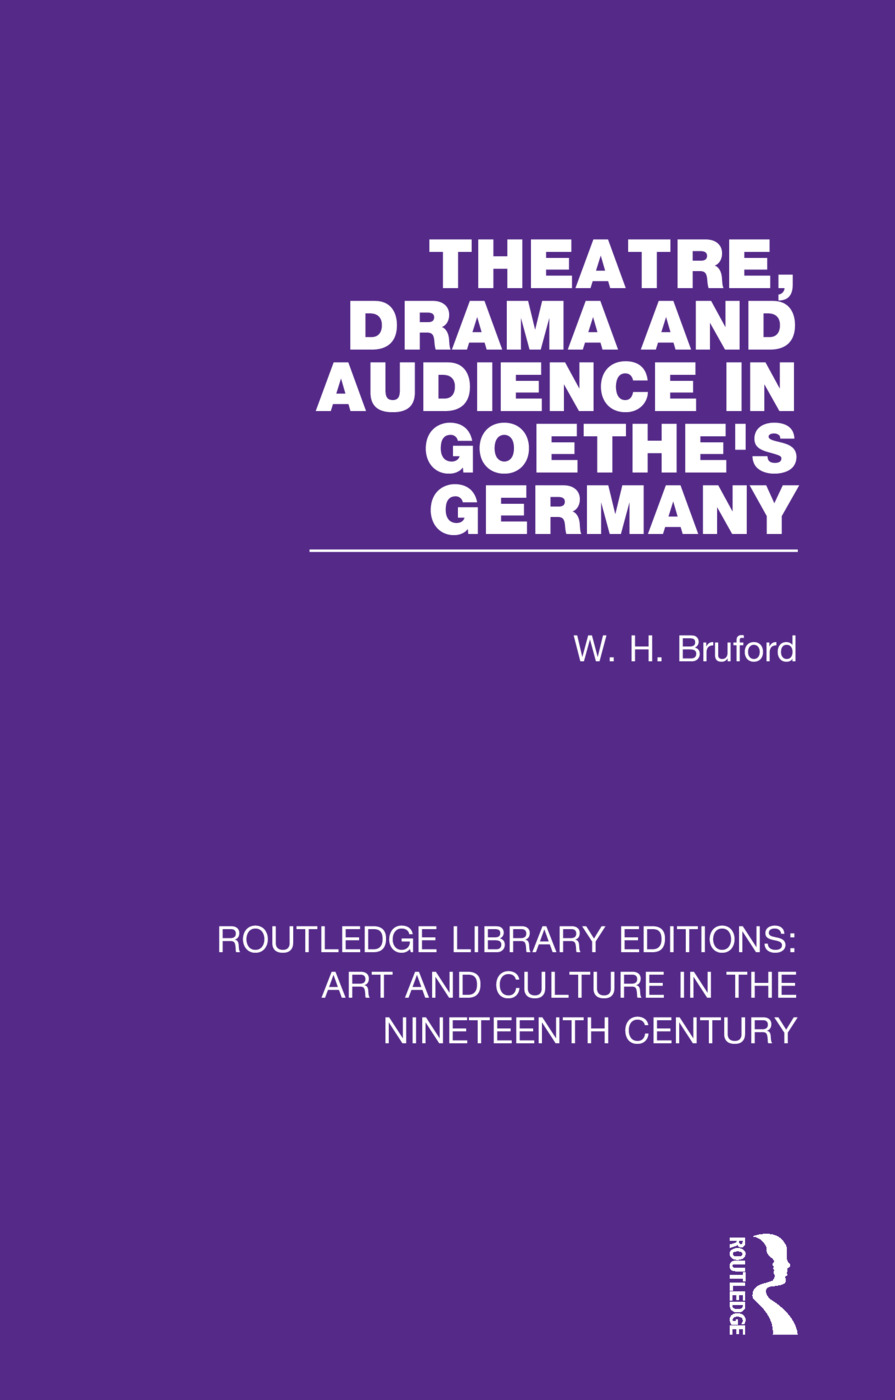 Theatre, Drama and Audience in Goethe's Germany book cover